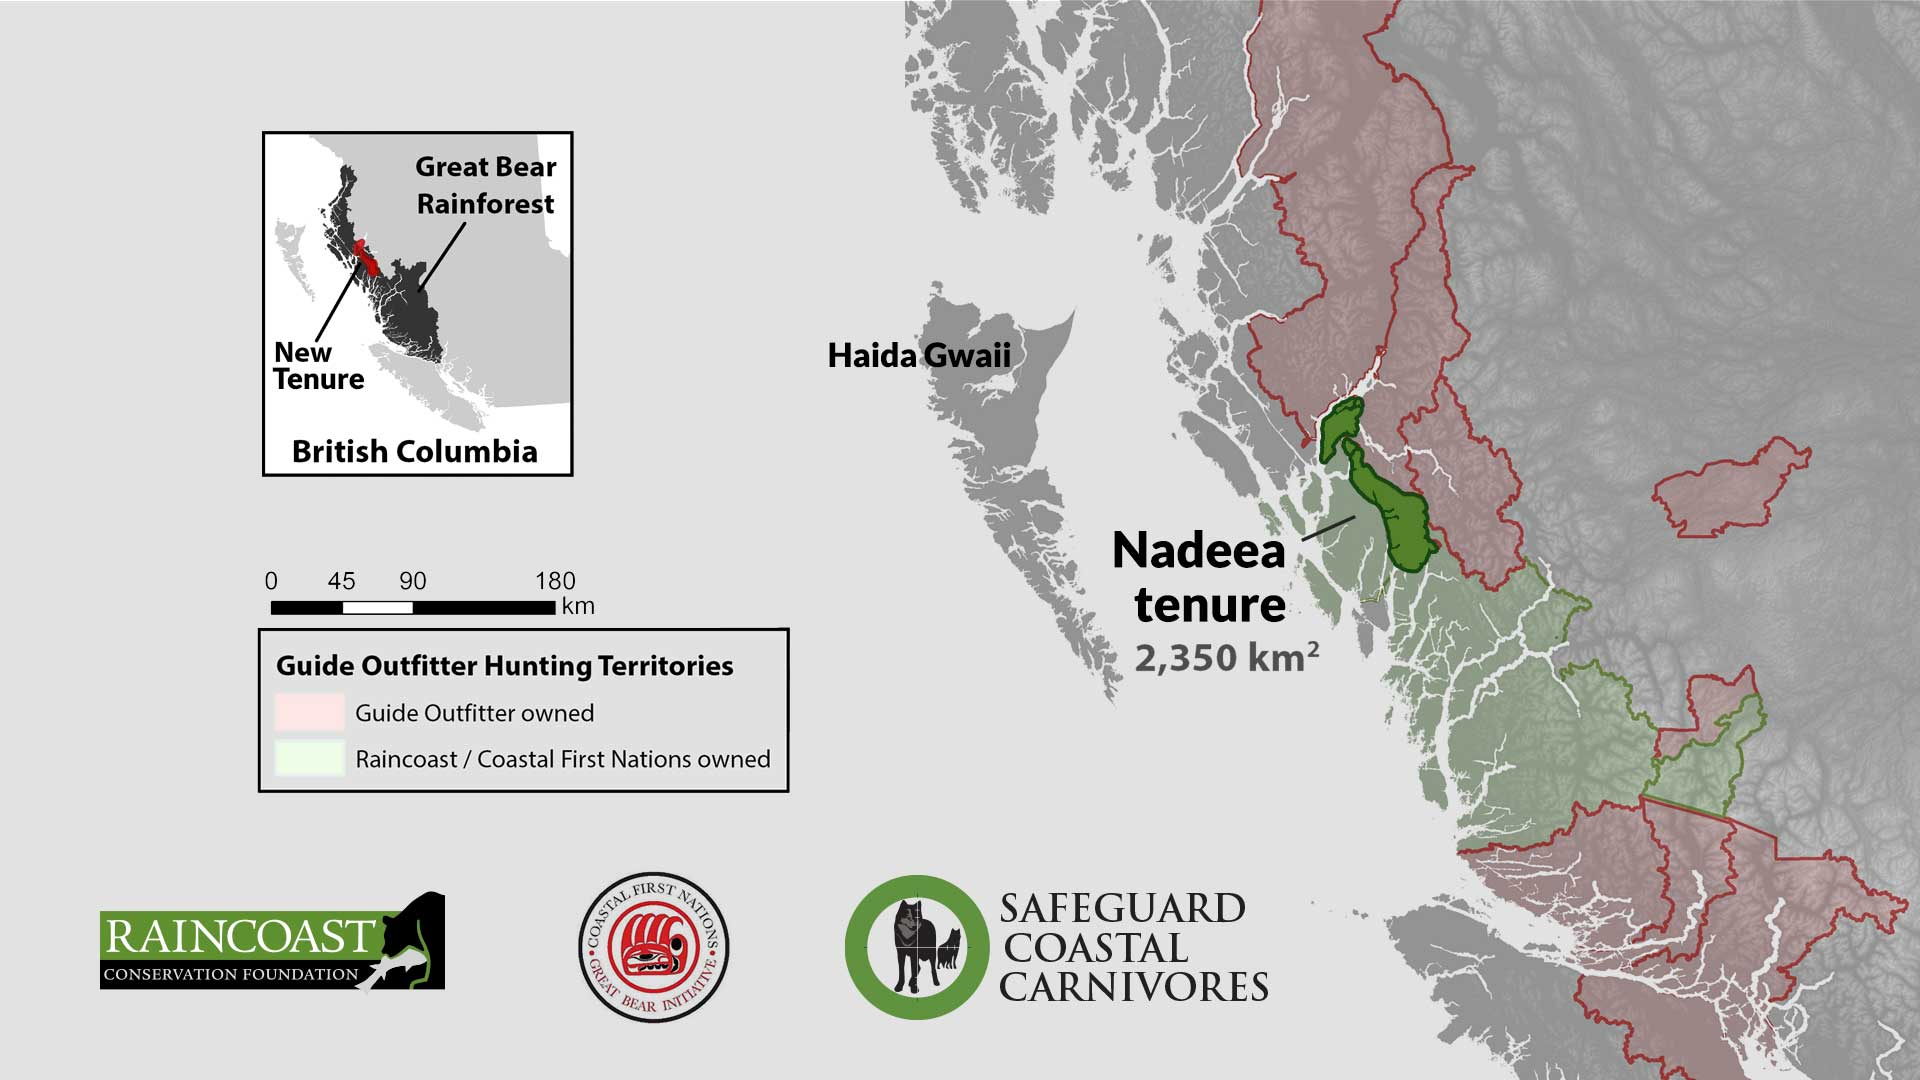 A map of the Nadeea tenure announcing the